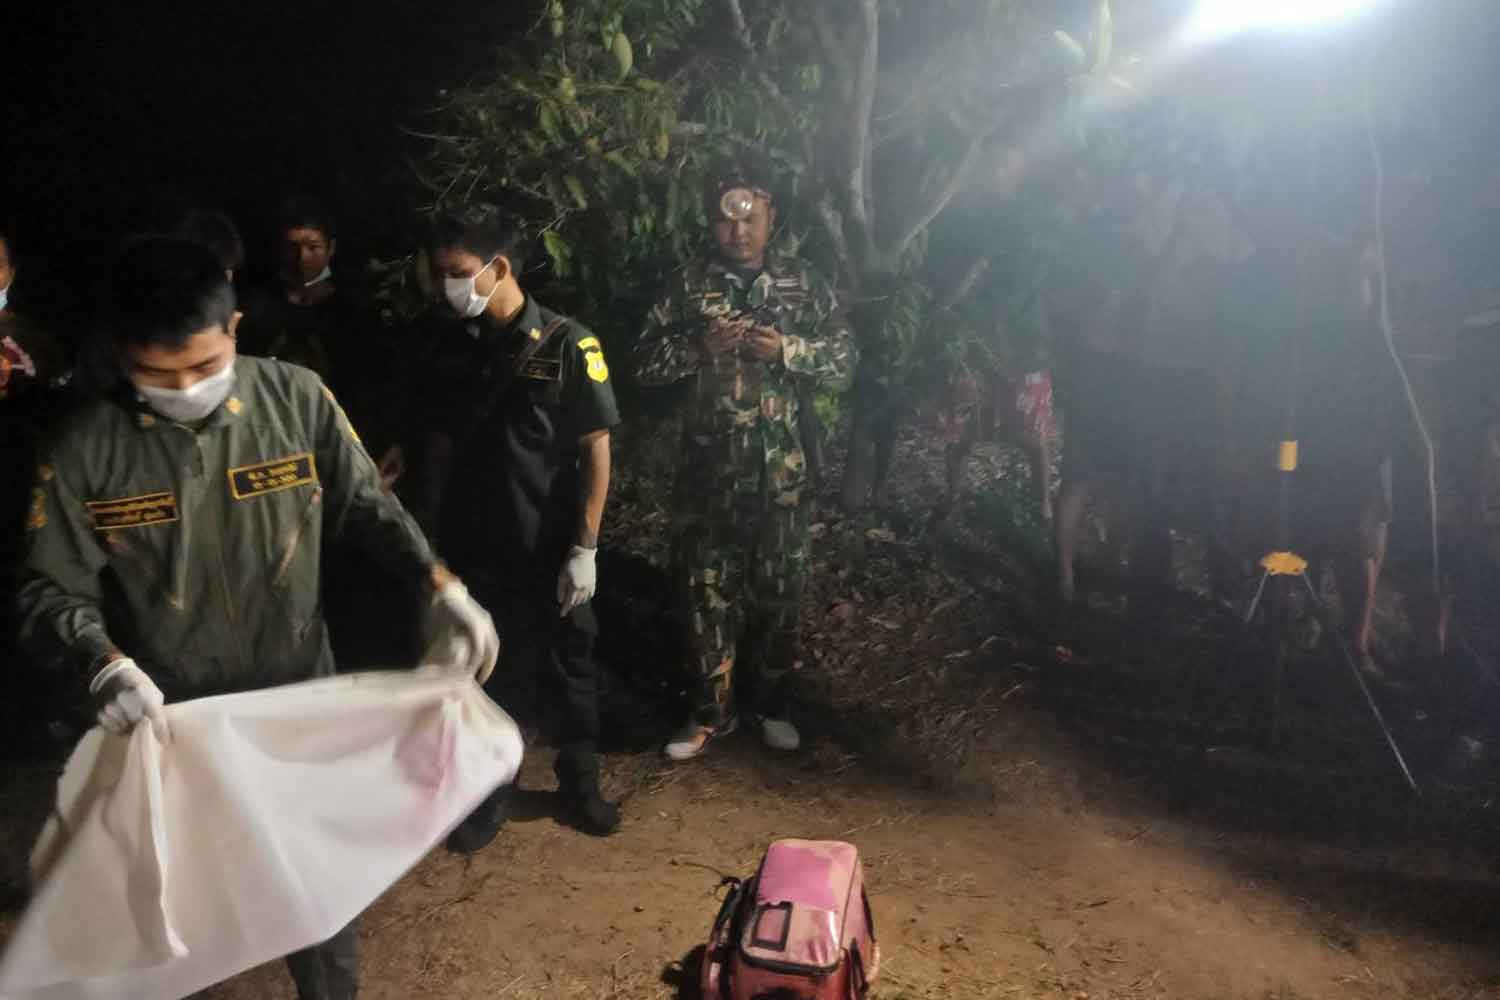 Wildlife officials examine the scene at the mango orchard in Prachin Buri's Si Maha Phot district where a wild elephant stomped a man to death on Sunday evening. (Photo: Manit Sanubboon)